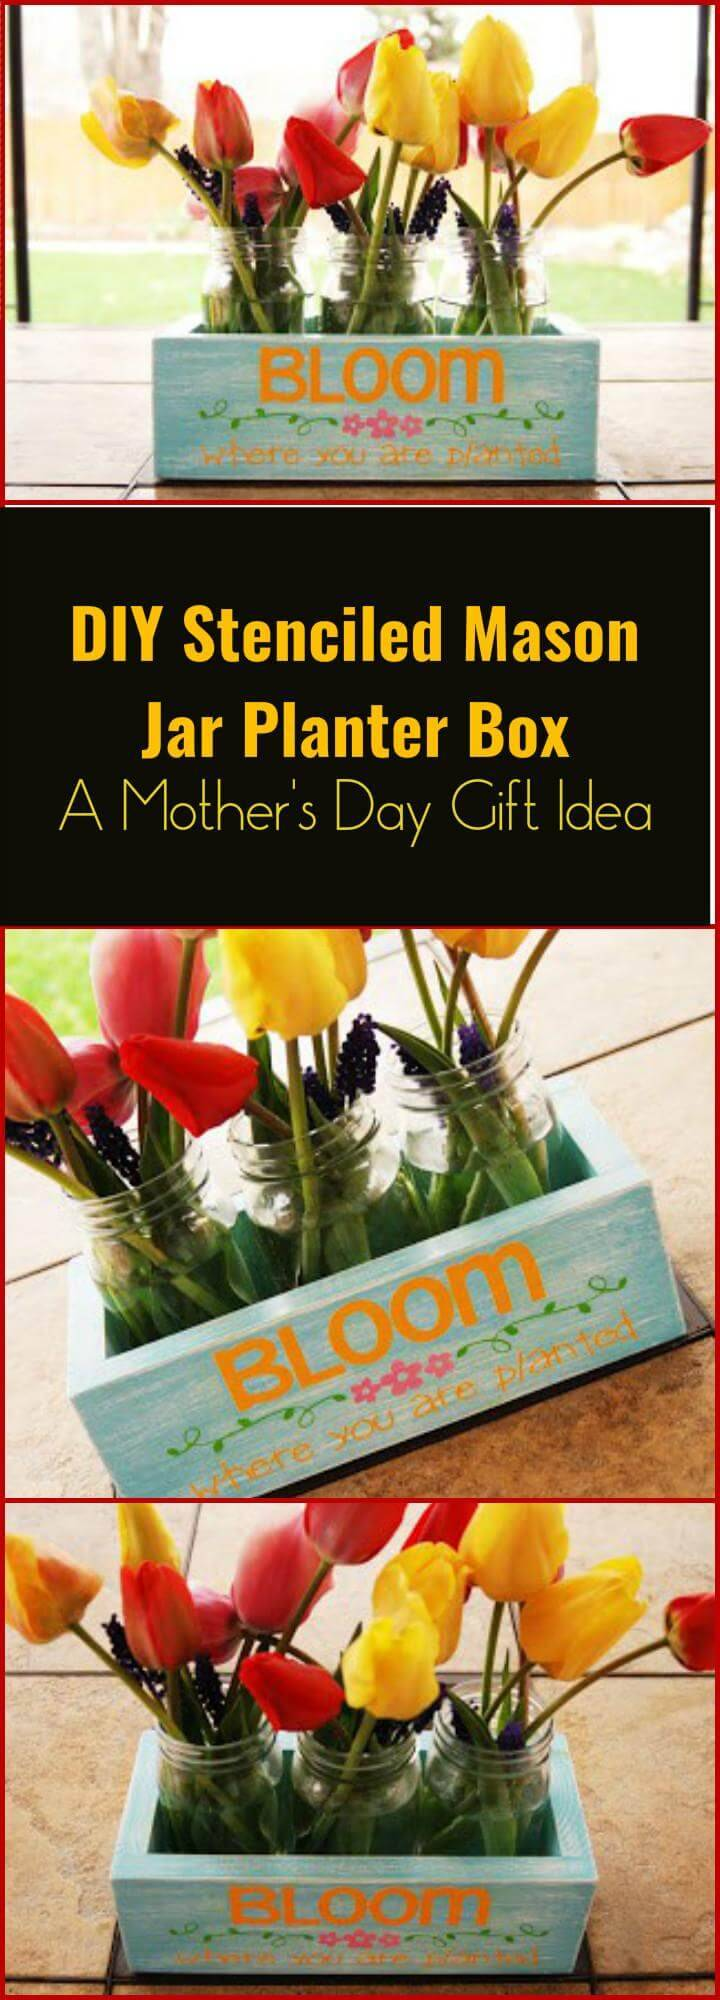 glam DIY stenciled Mason jar planter box